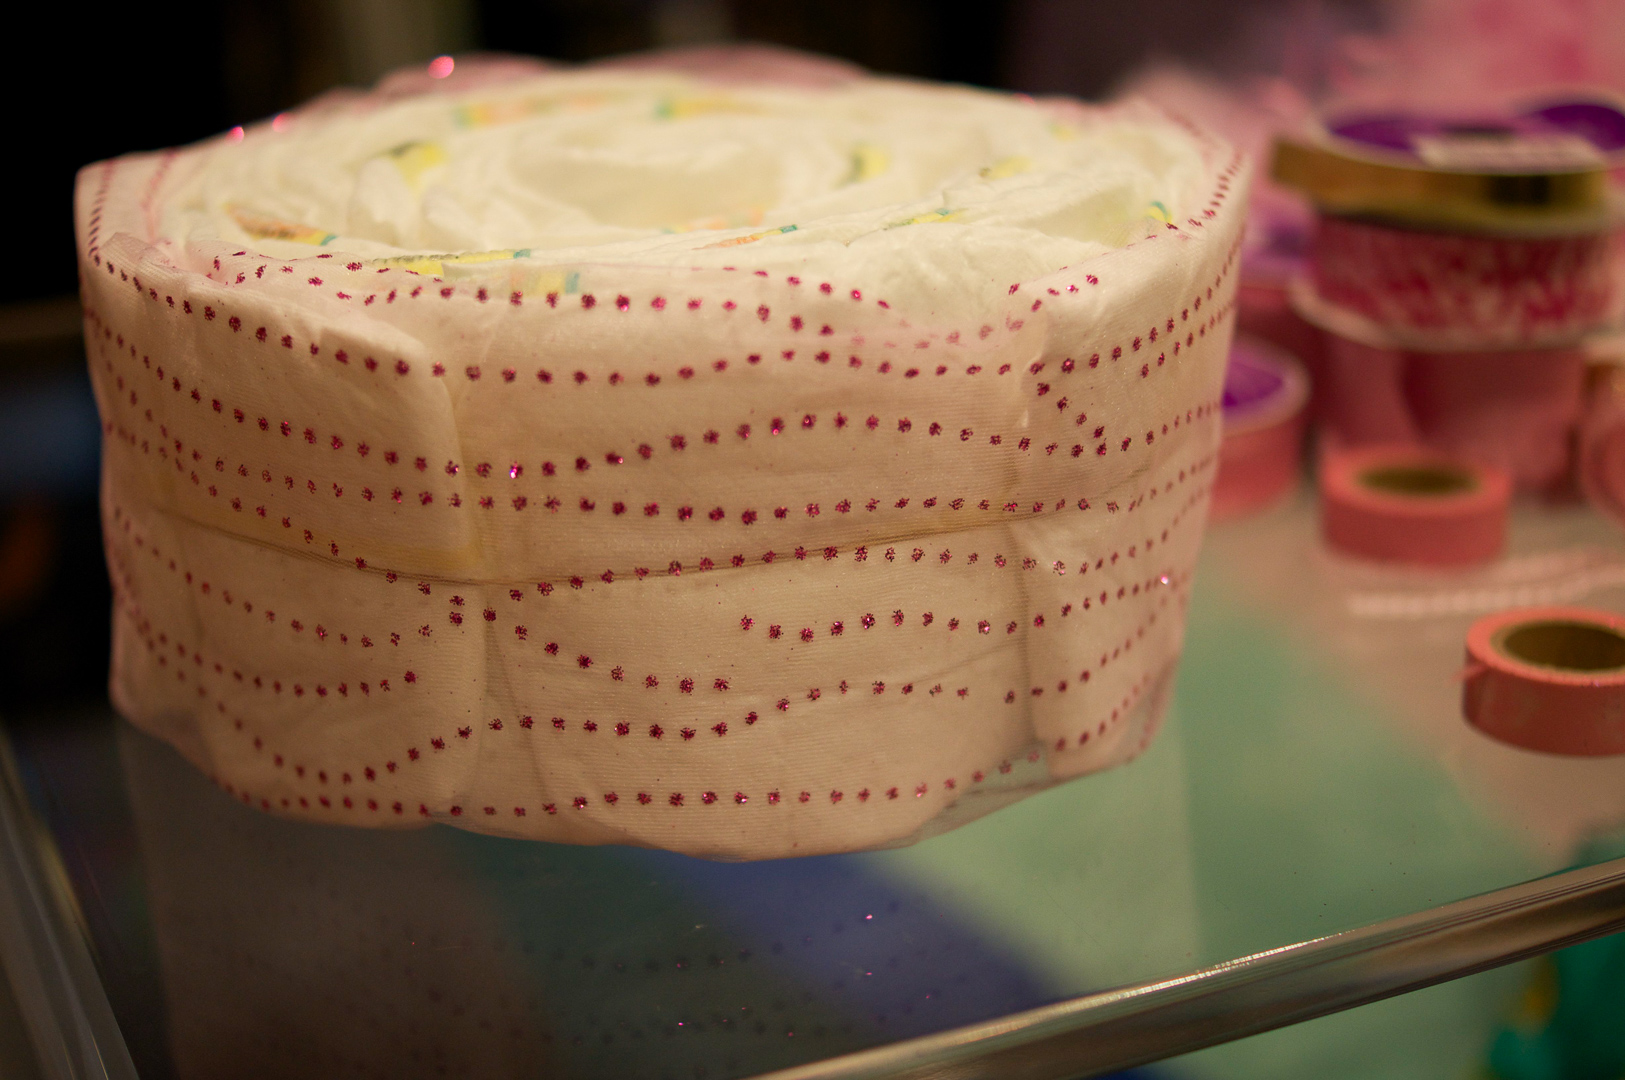 Mesh tulle wrapped around the diaper cake. I kept the rubber band in place.